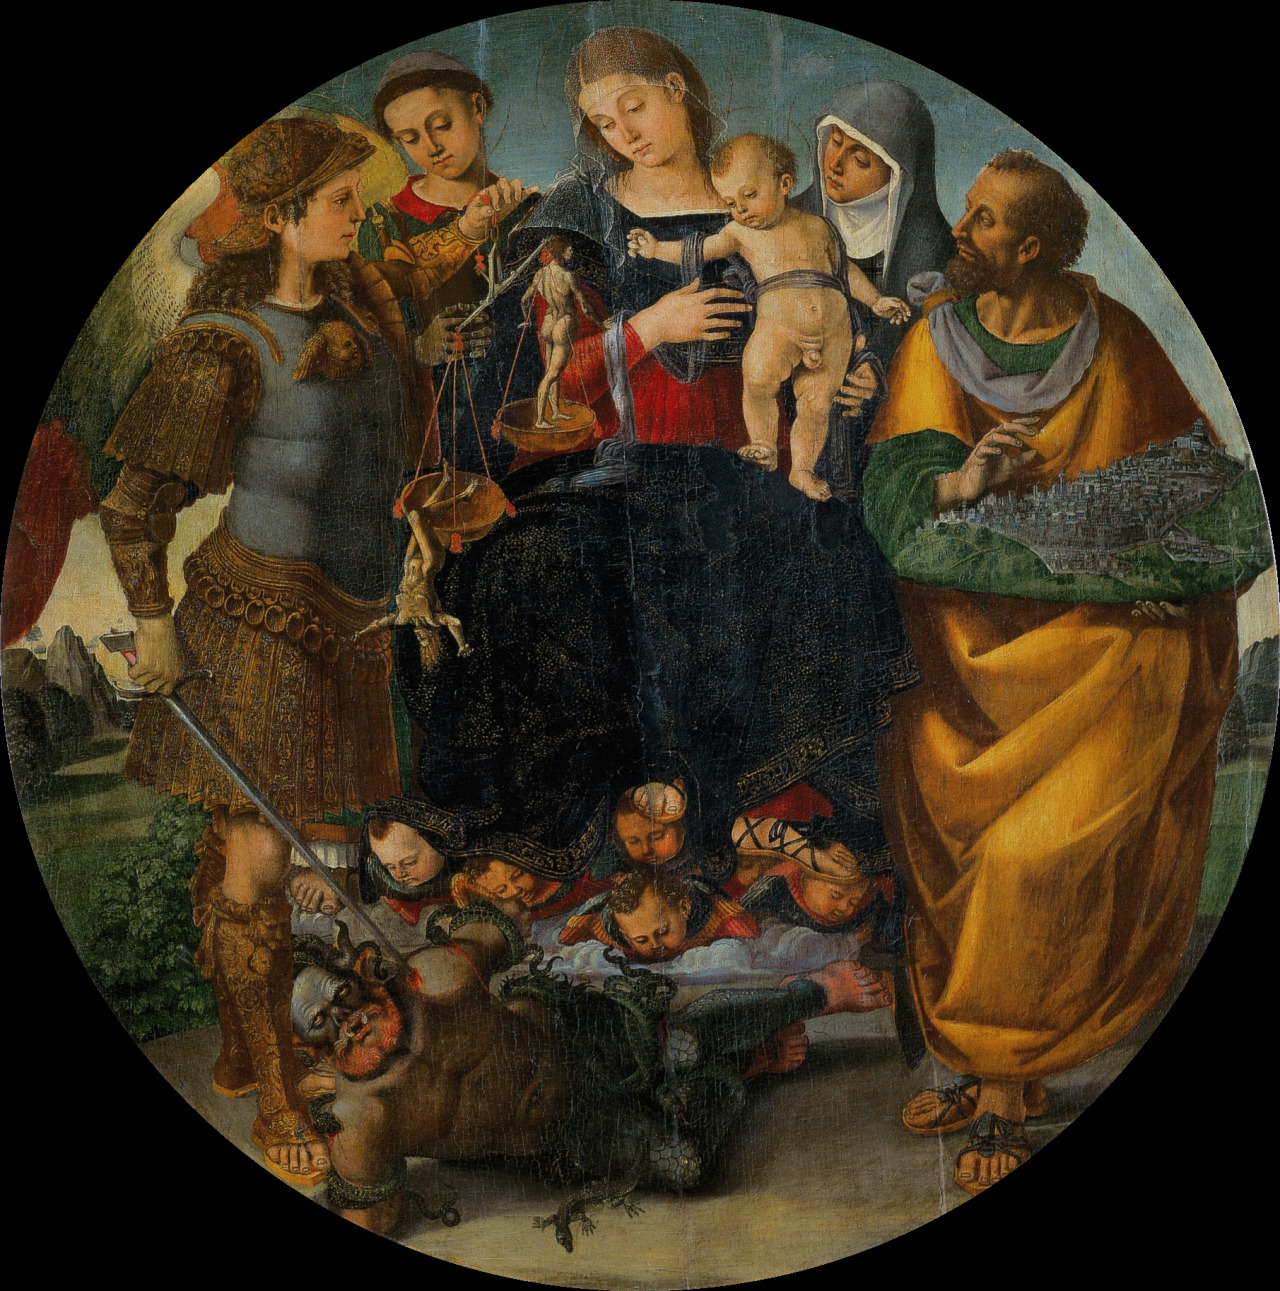 necspenecmetu :     Luca Signorelli, Madonna and Child with Saints Michael the Archangel, Vincent of Saragozza, Margaret of Cortona, and Mark, c. 1510-2